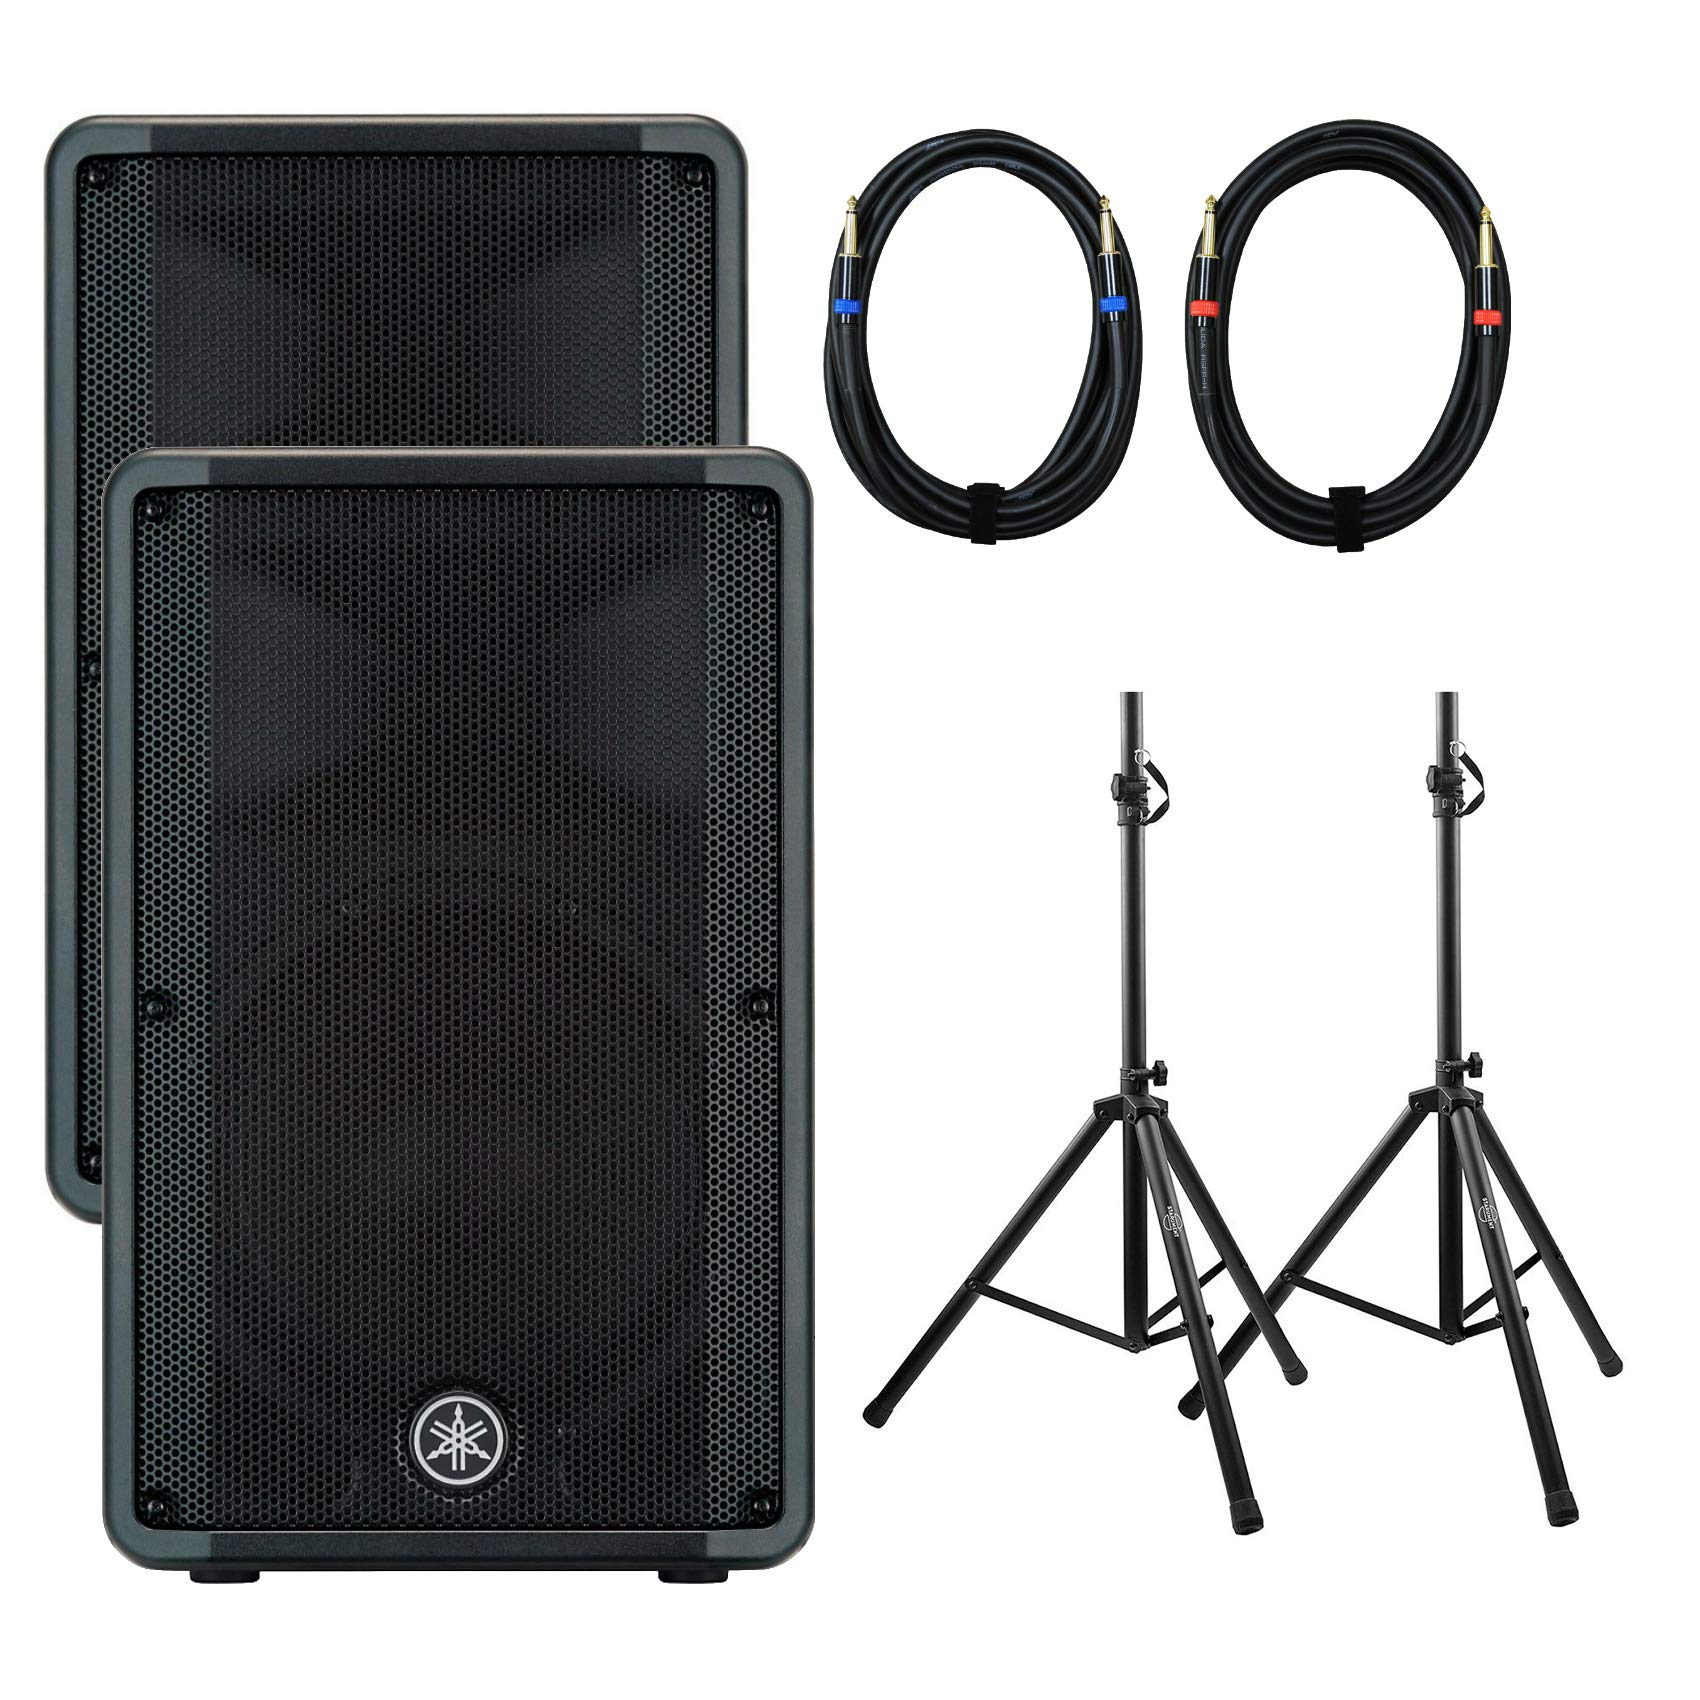 Yamaha CBR12 12'' 2-Way Passive Bass Reflex Speaker (Pair) with Height-Adjustable Tripod Speaker Stands and 2 x 25-Foot Speaker Cables by Yamaha Live Sound